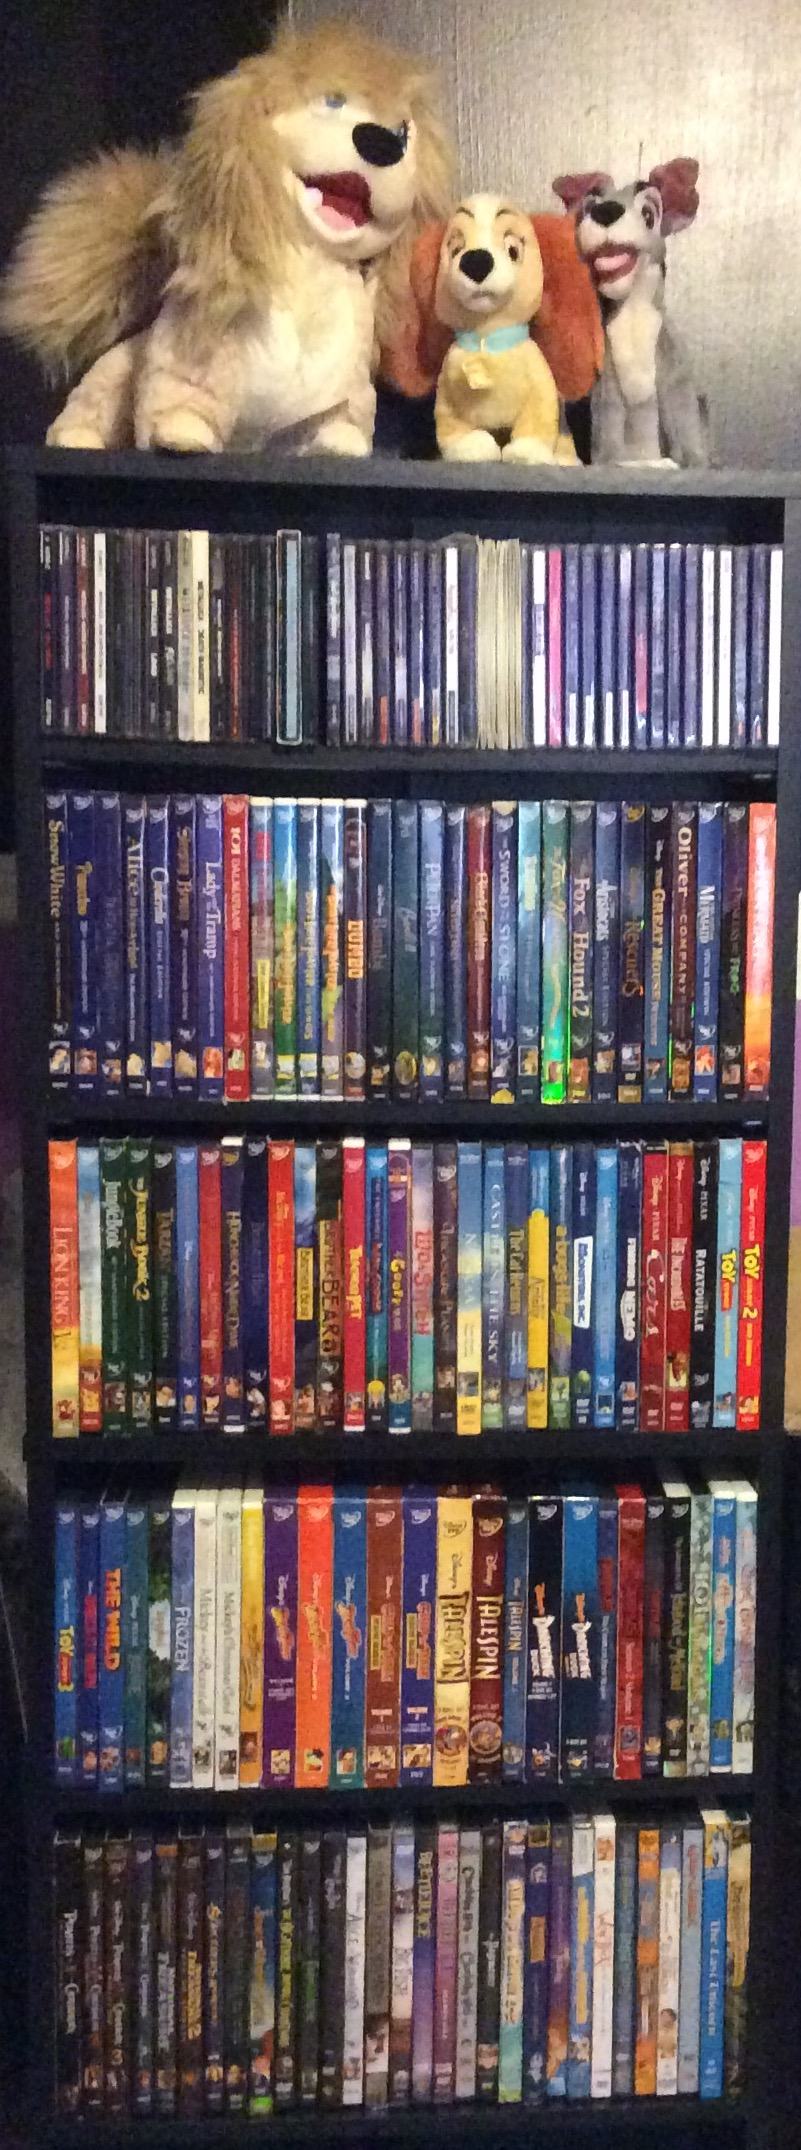 My DVD Collection, Pt. 2